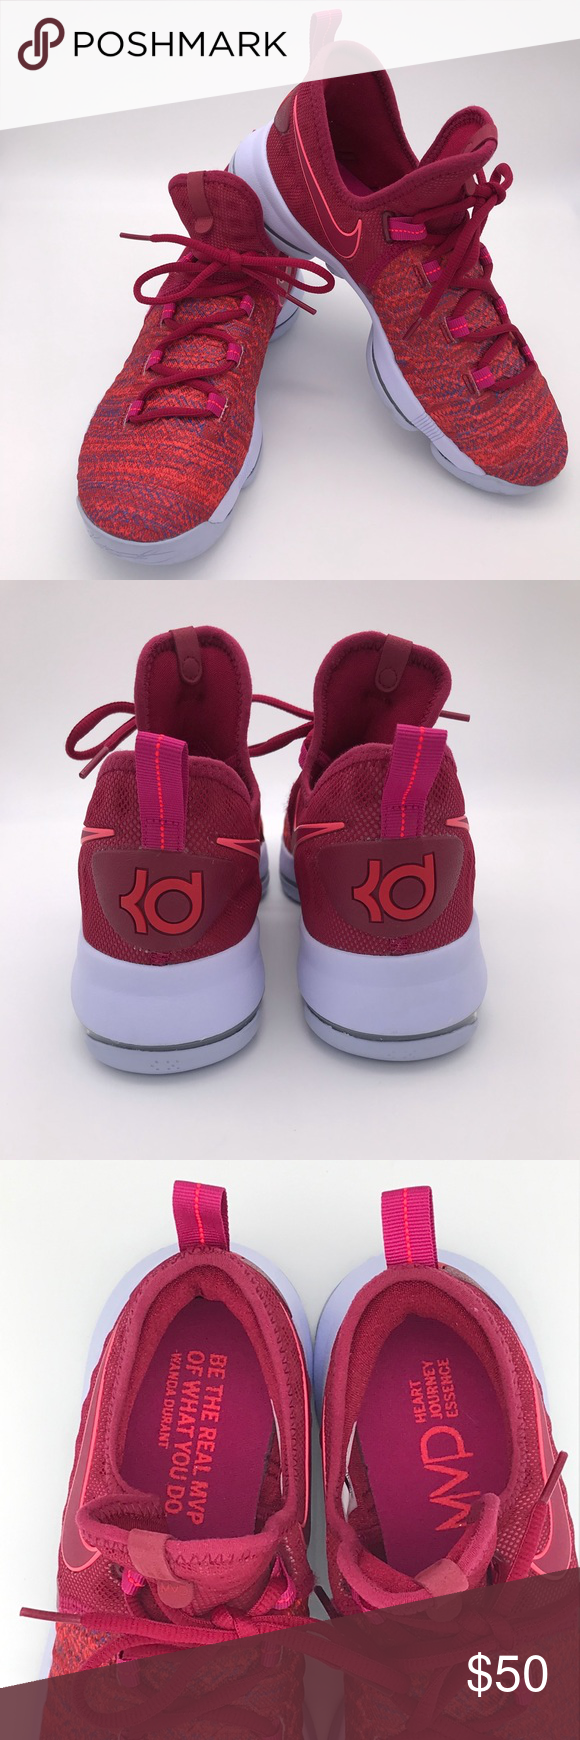 best service dd0f2 9a276 Nike youth zoom KD 9 EP racer pink IX size 7Y Nike youth ...